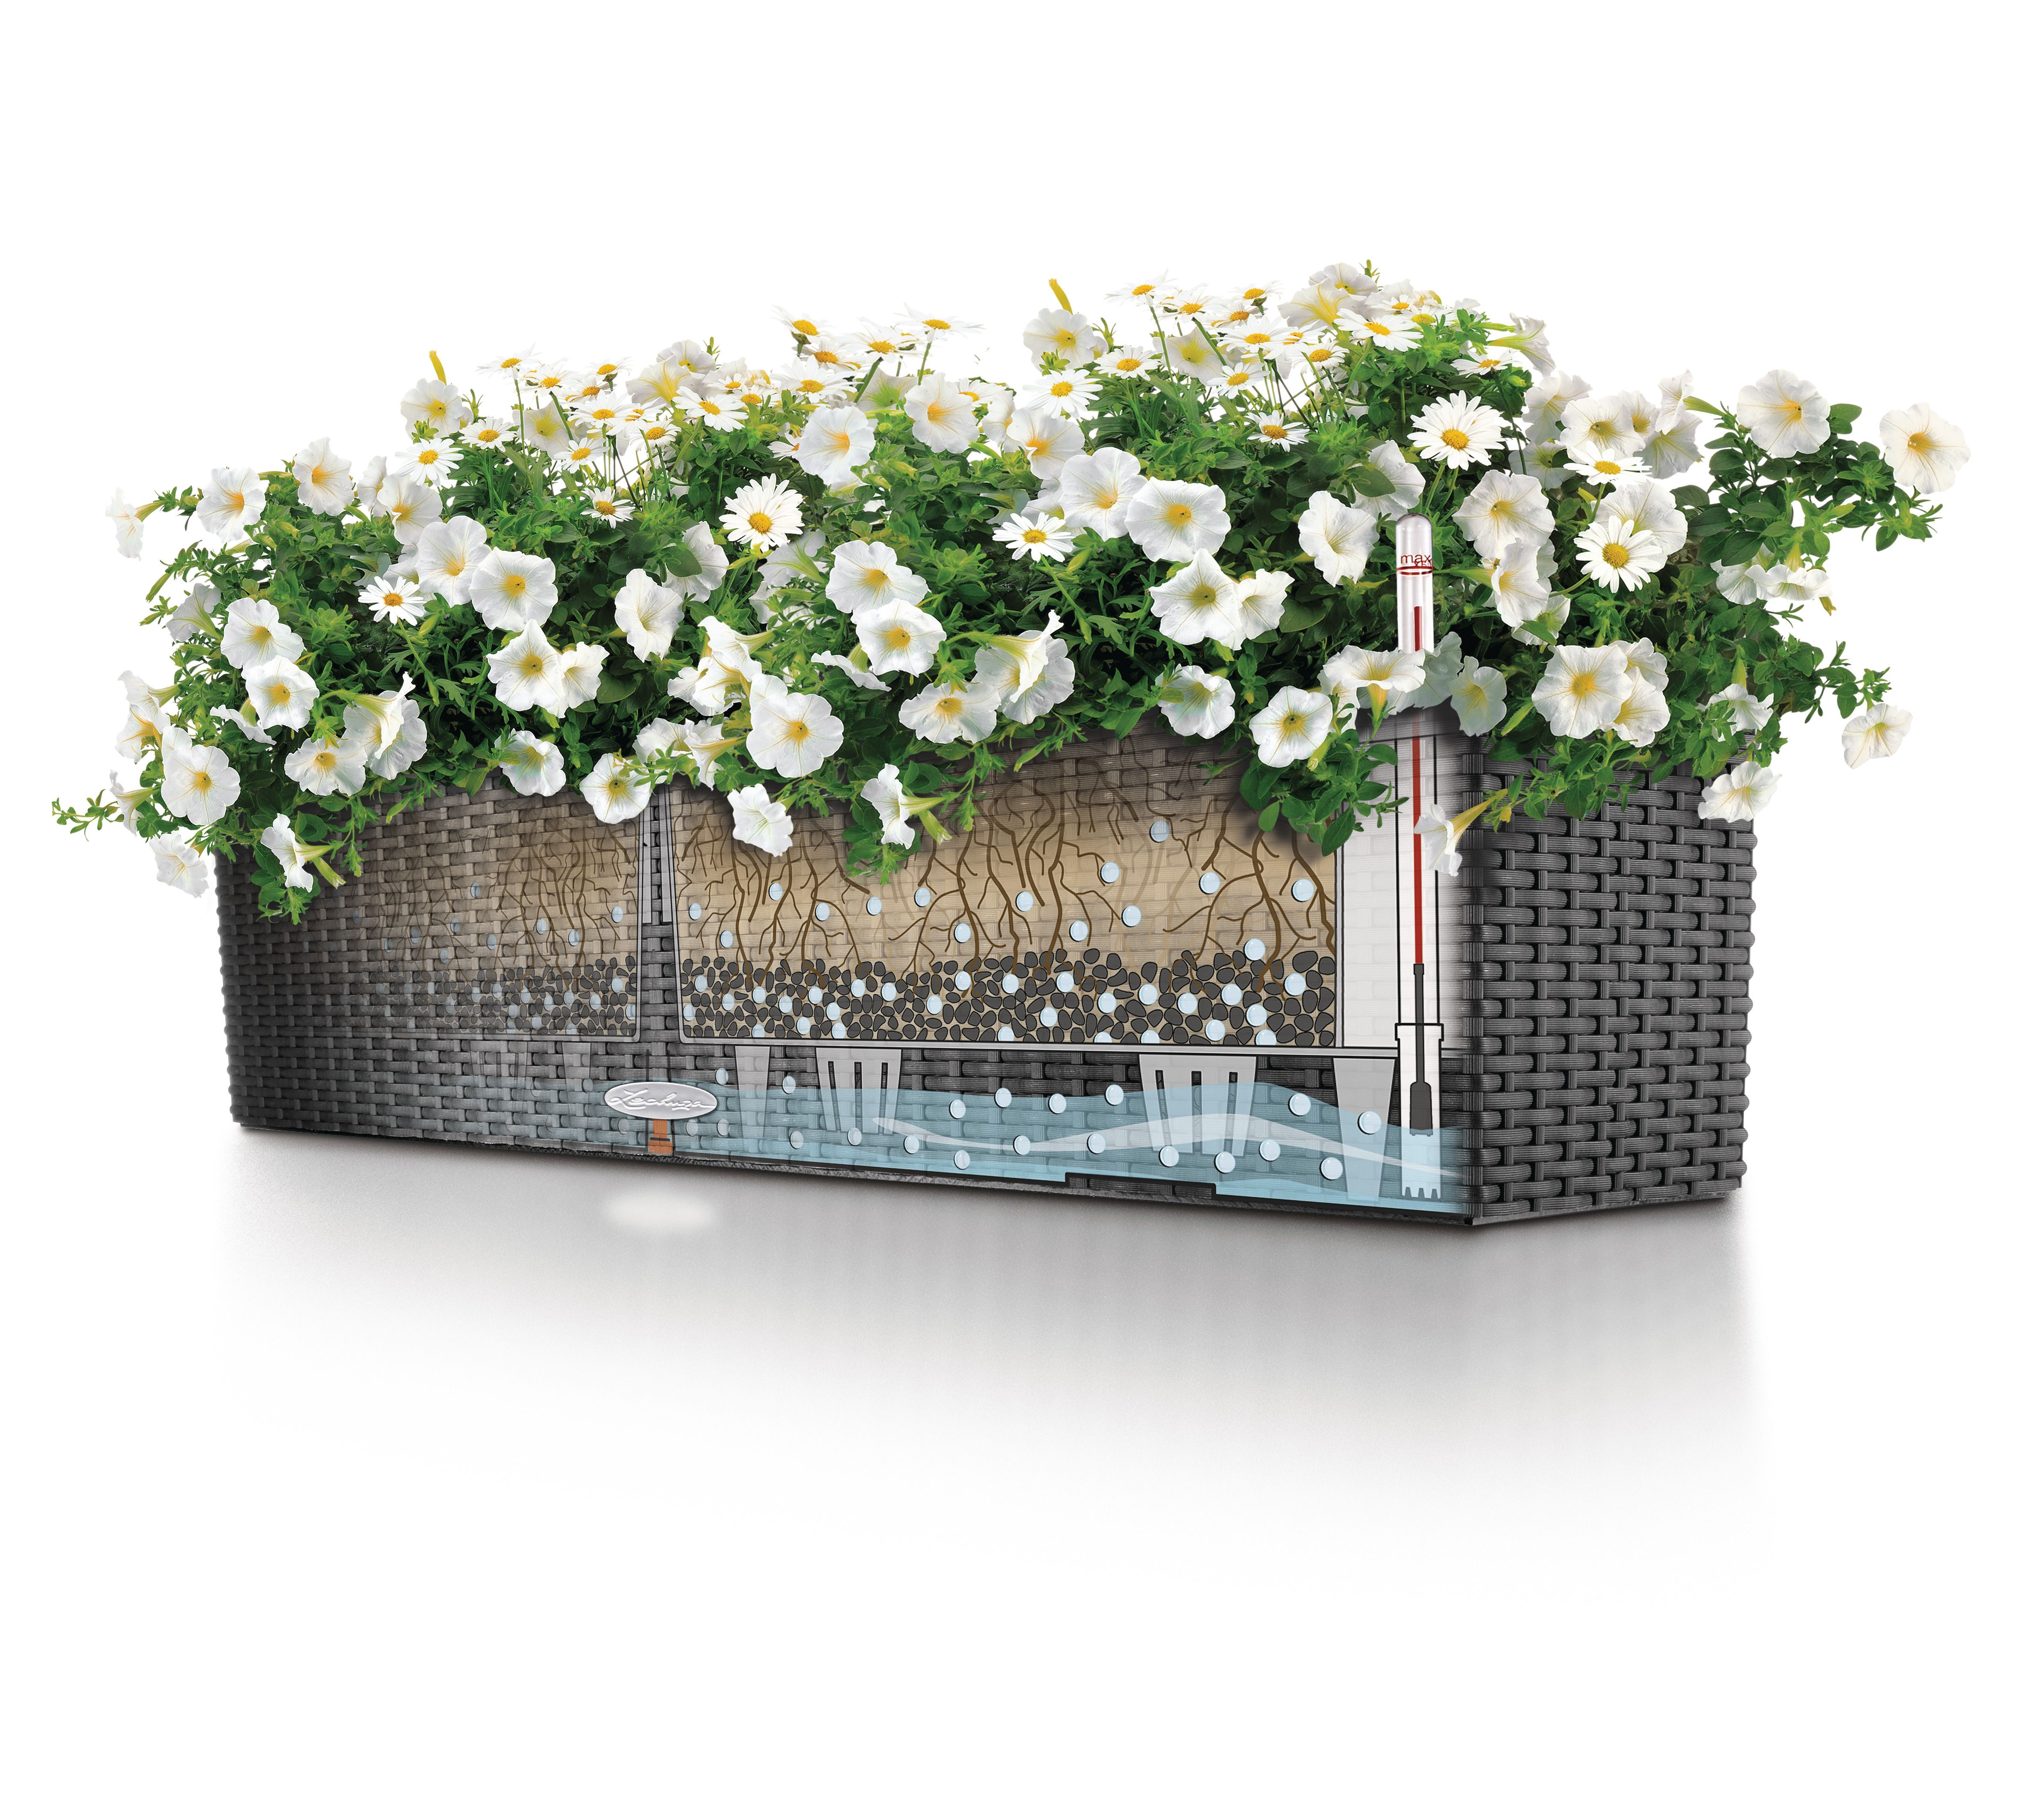 Blumenkästen Mit Wasserspeicher Lechuza Pin By Gover Horticulture On Lechuza Planters Lechuza Flower Boxes